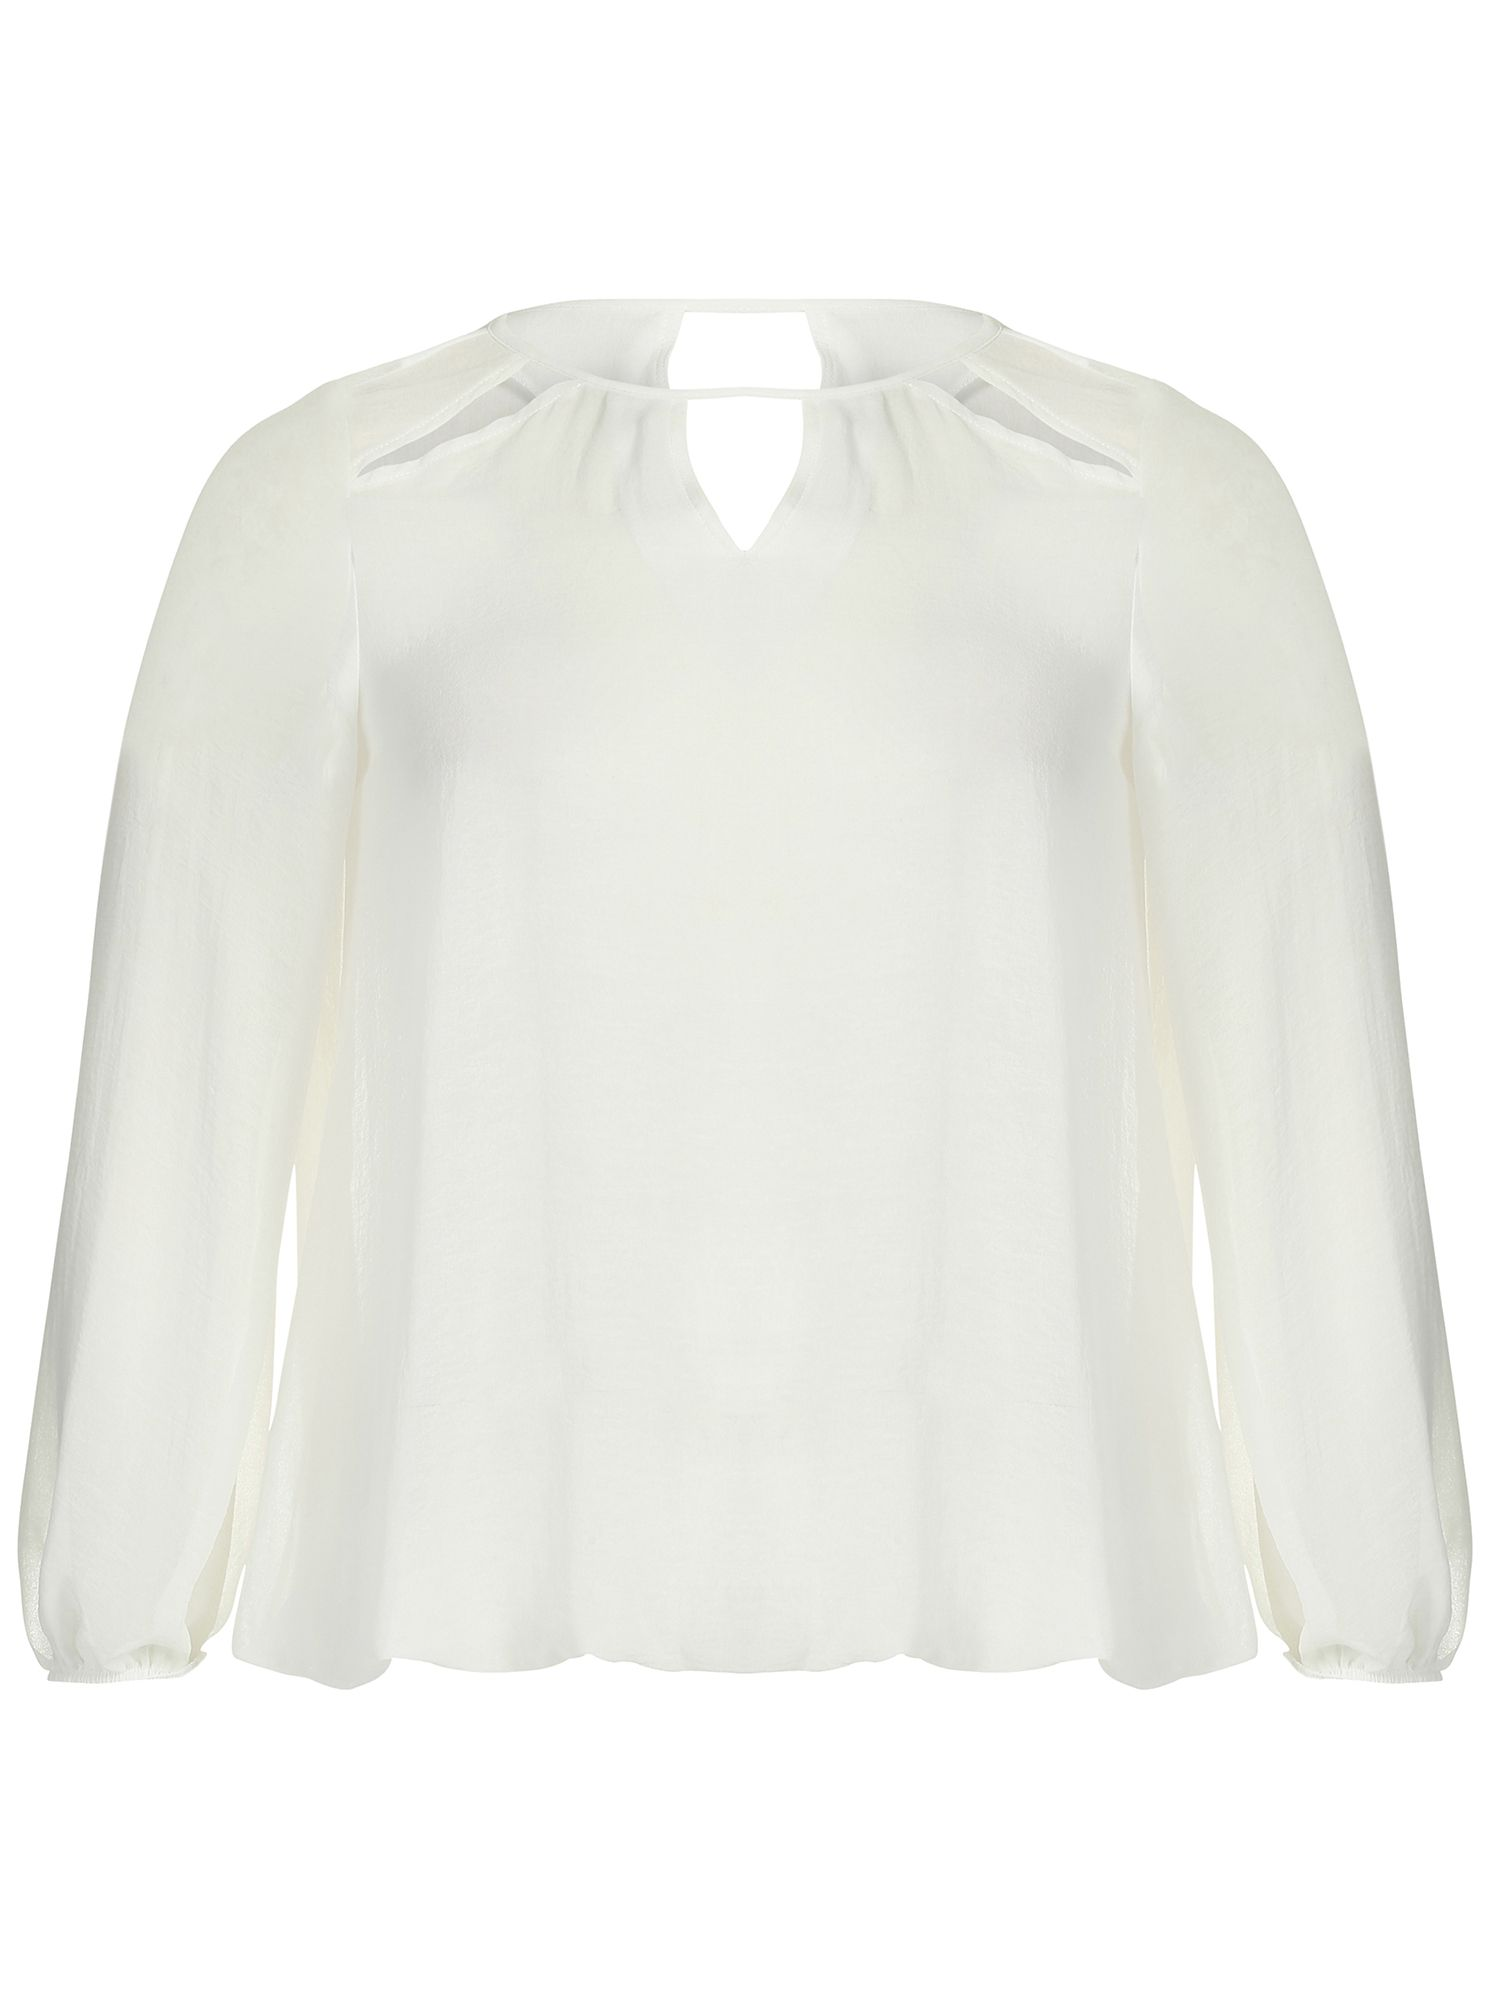 Threads Threads Plus Size Star Cut Out Sheer Blouse, White